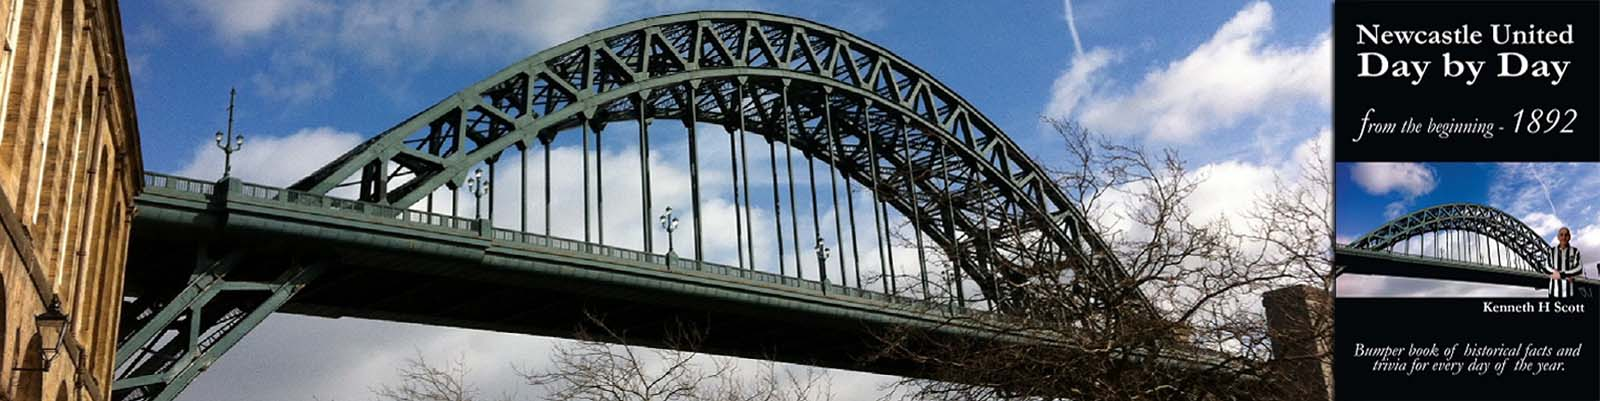 The World Famous Tyne Bridge.